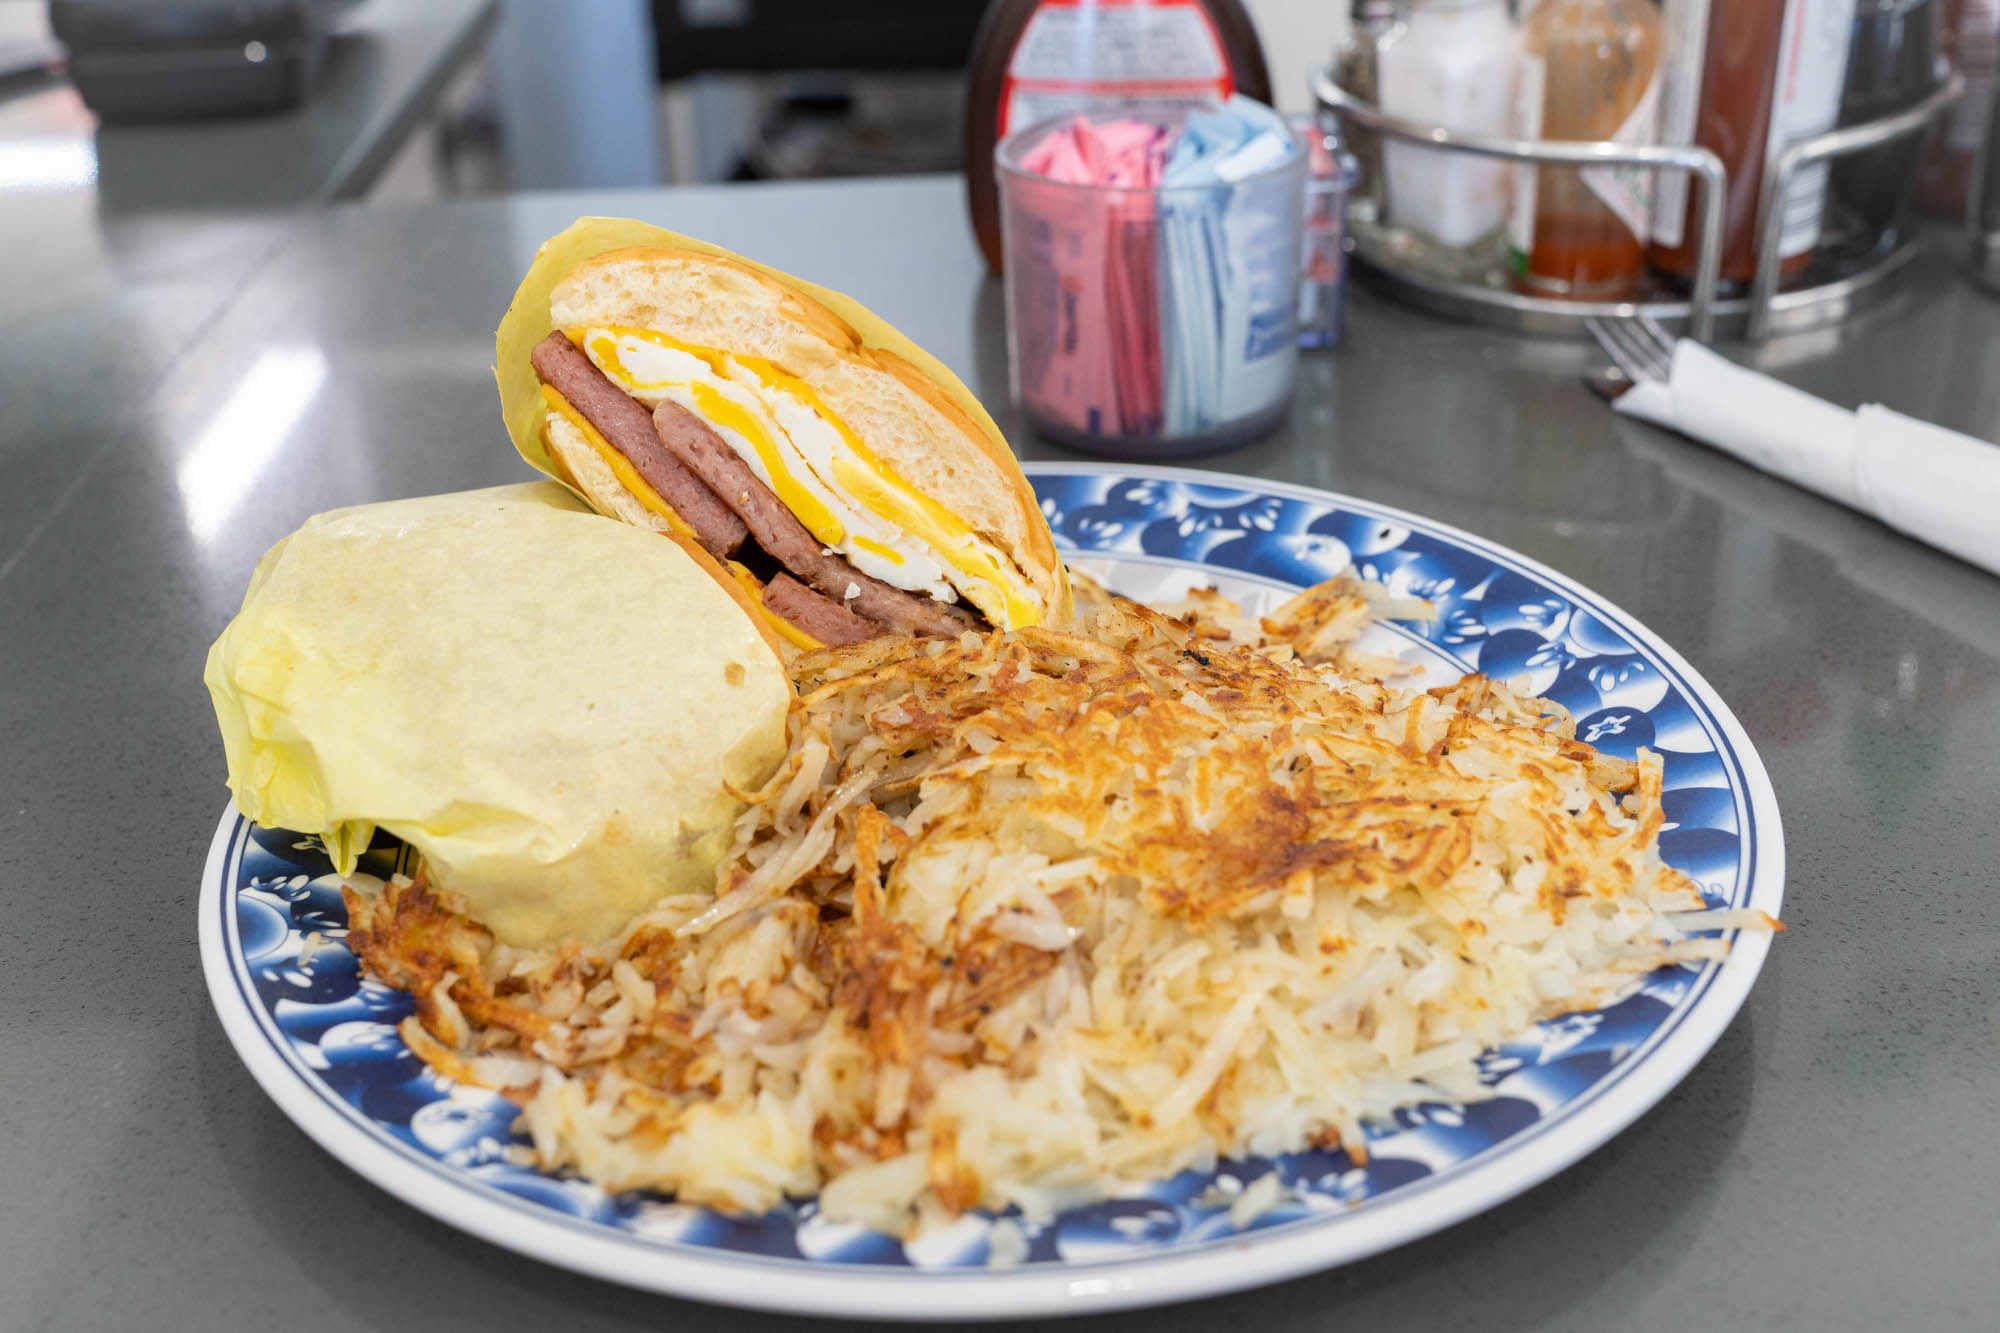 Breakfast Sandwich with Spam and hash browns